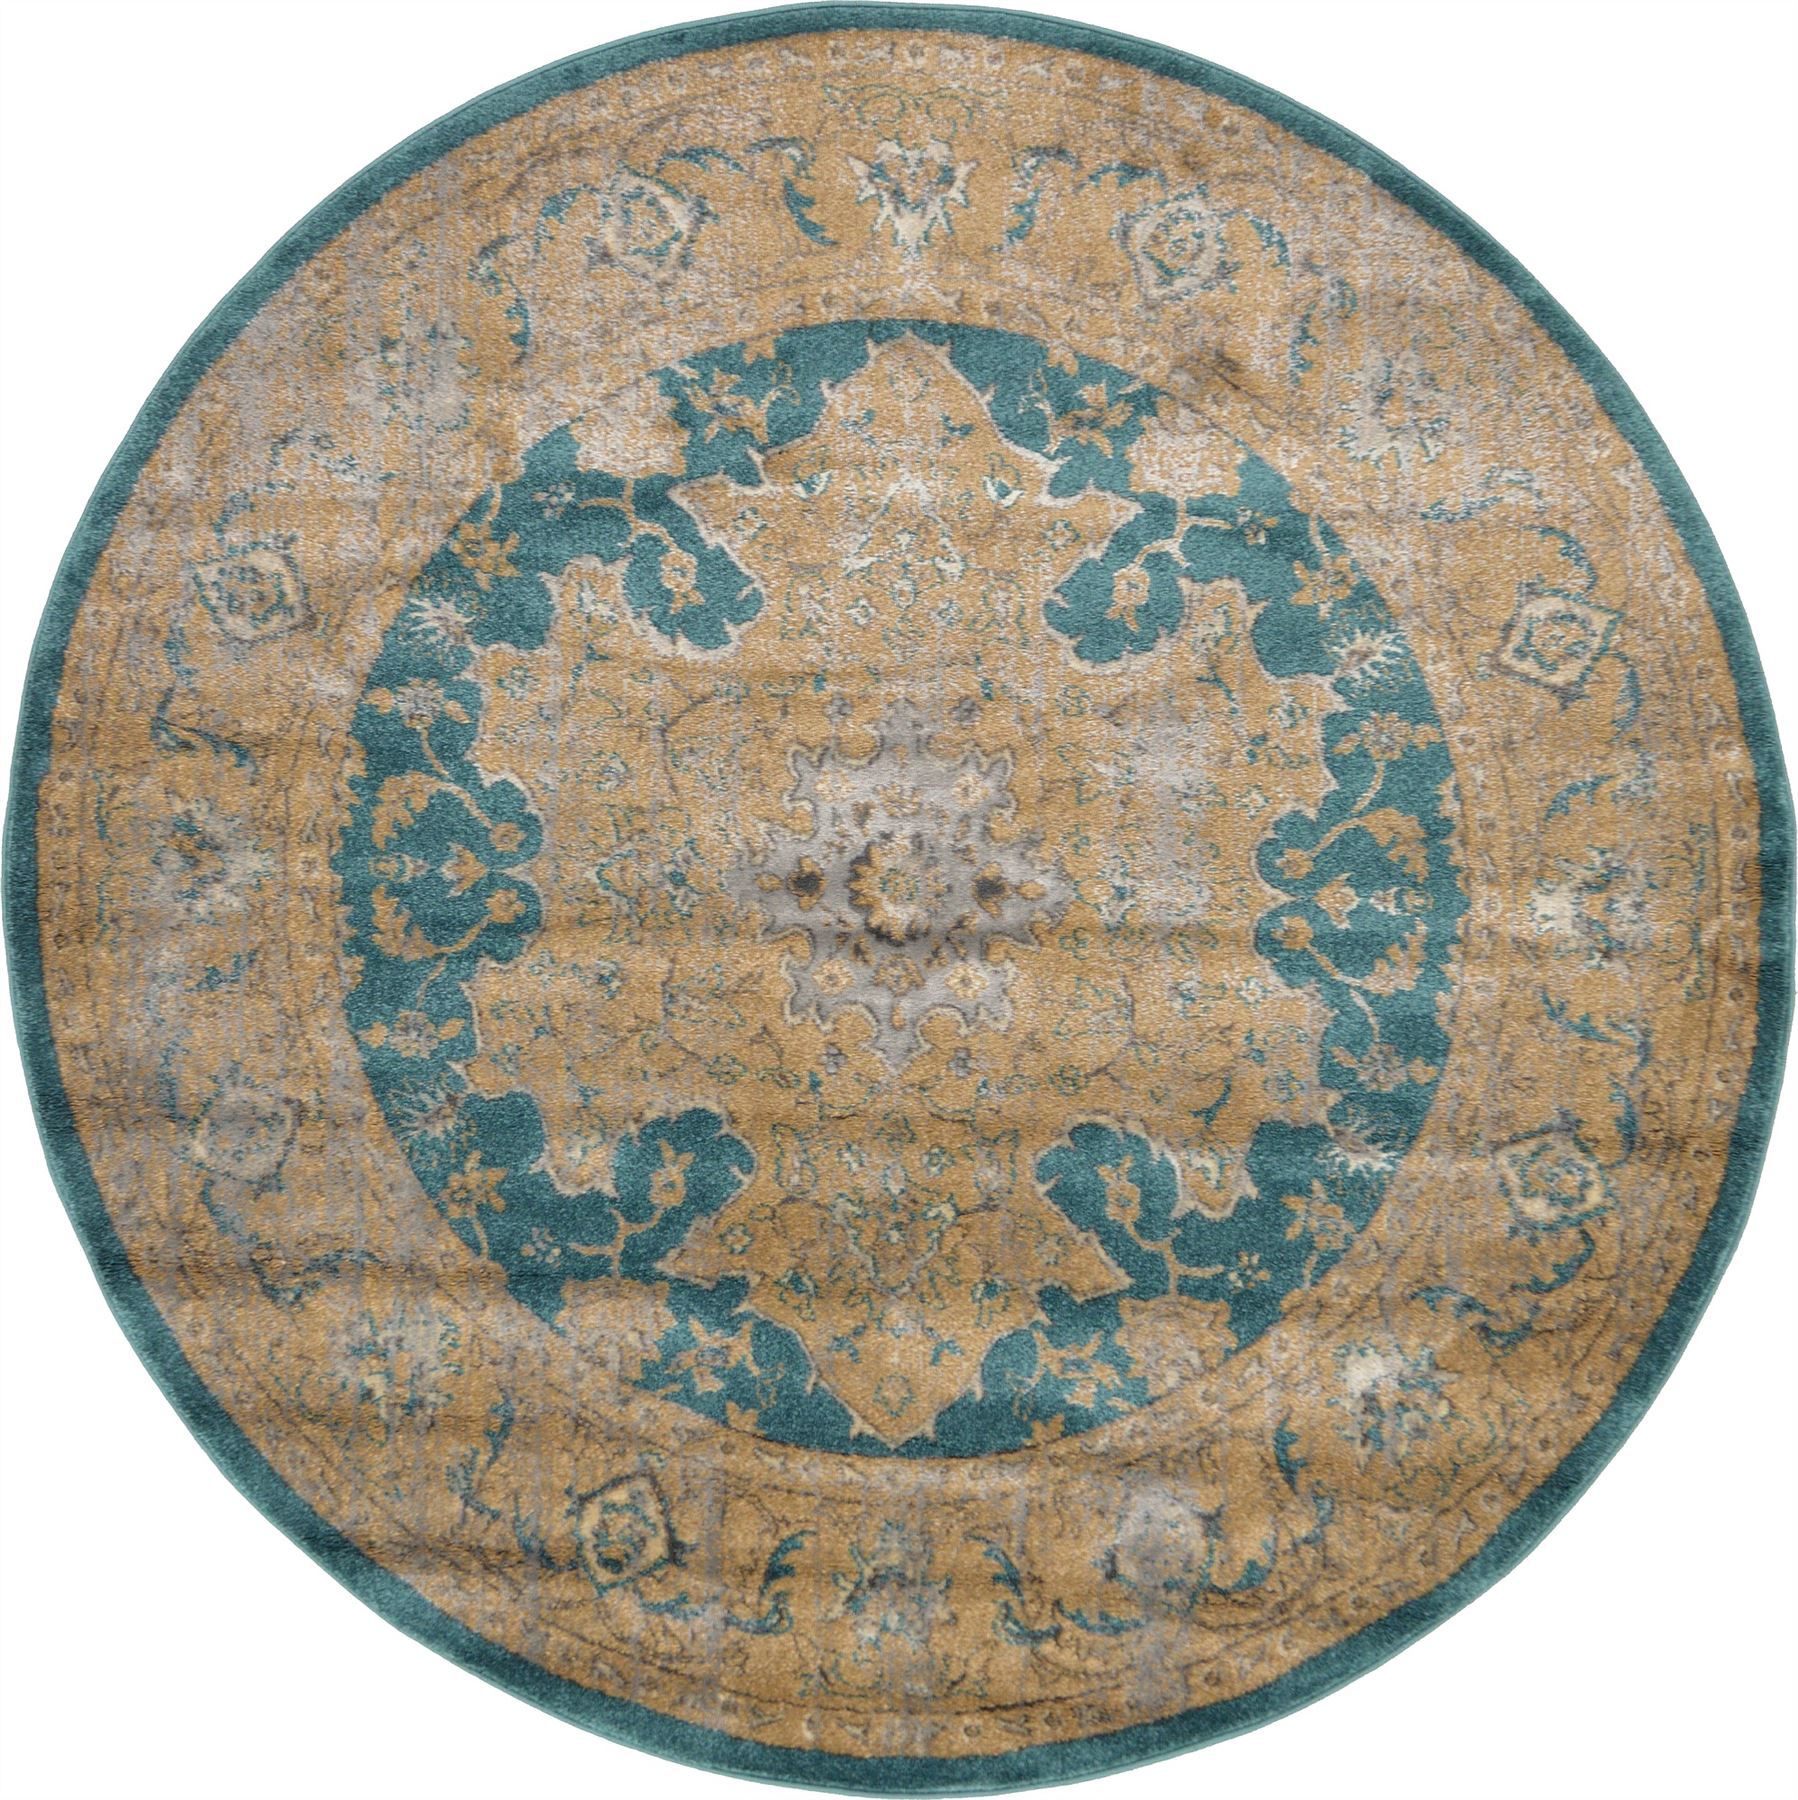 Oriental Rugs Persian Style Carpets New Area Rug